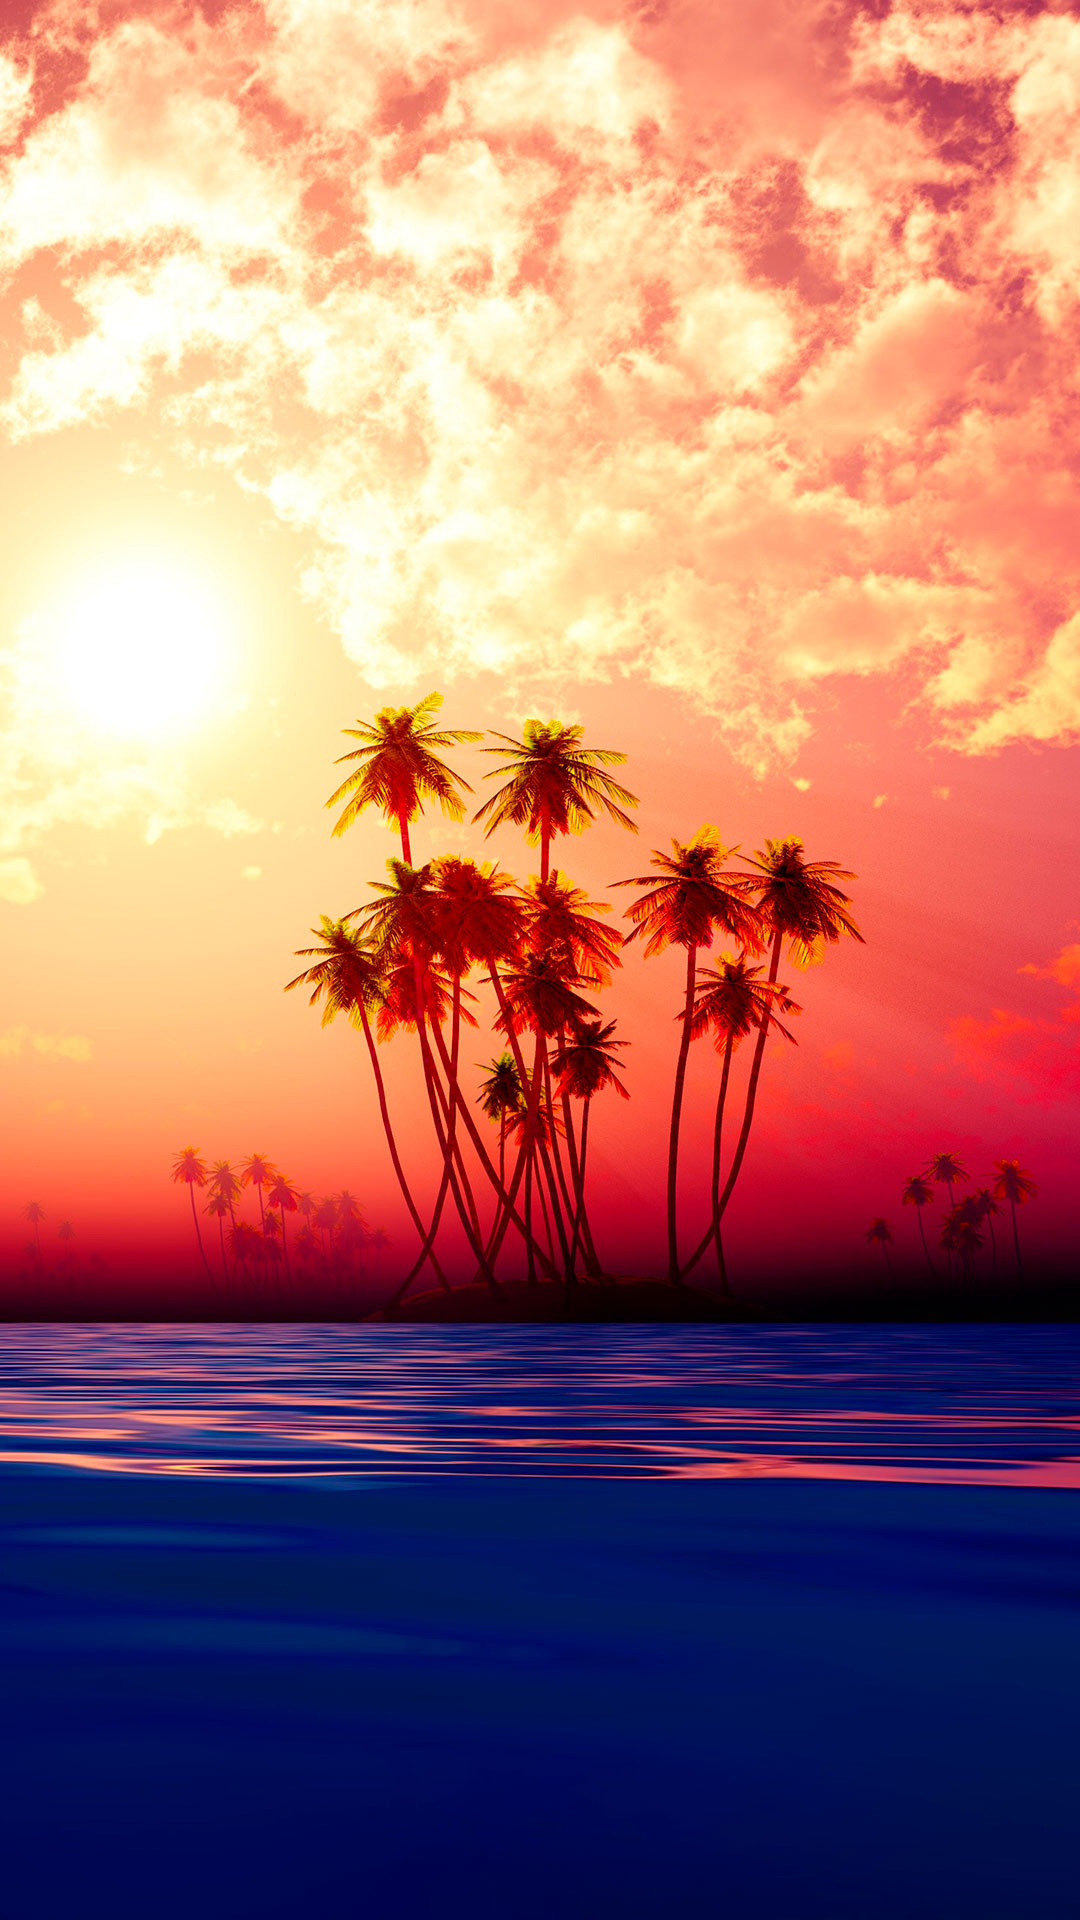 iPhone wallpaper island sunset Island